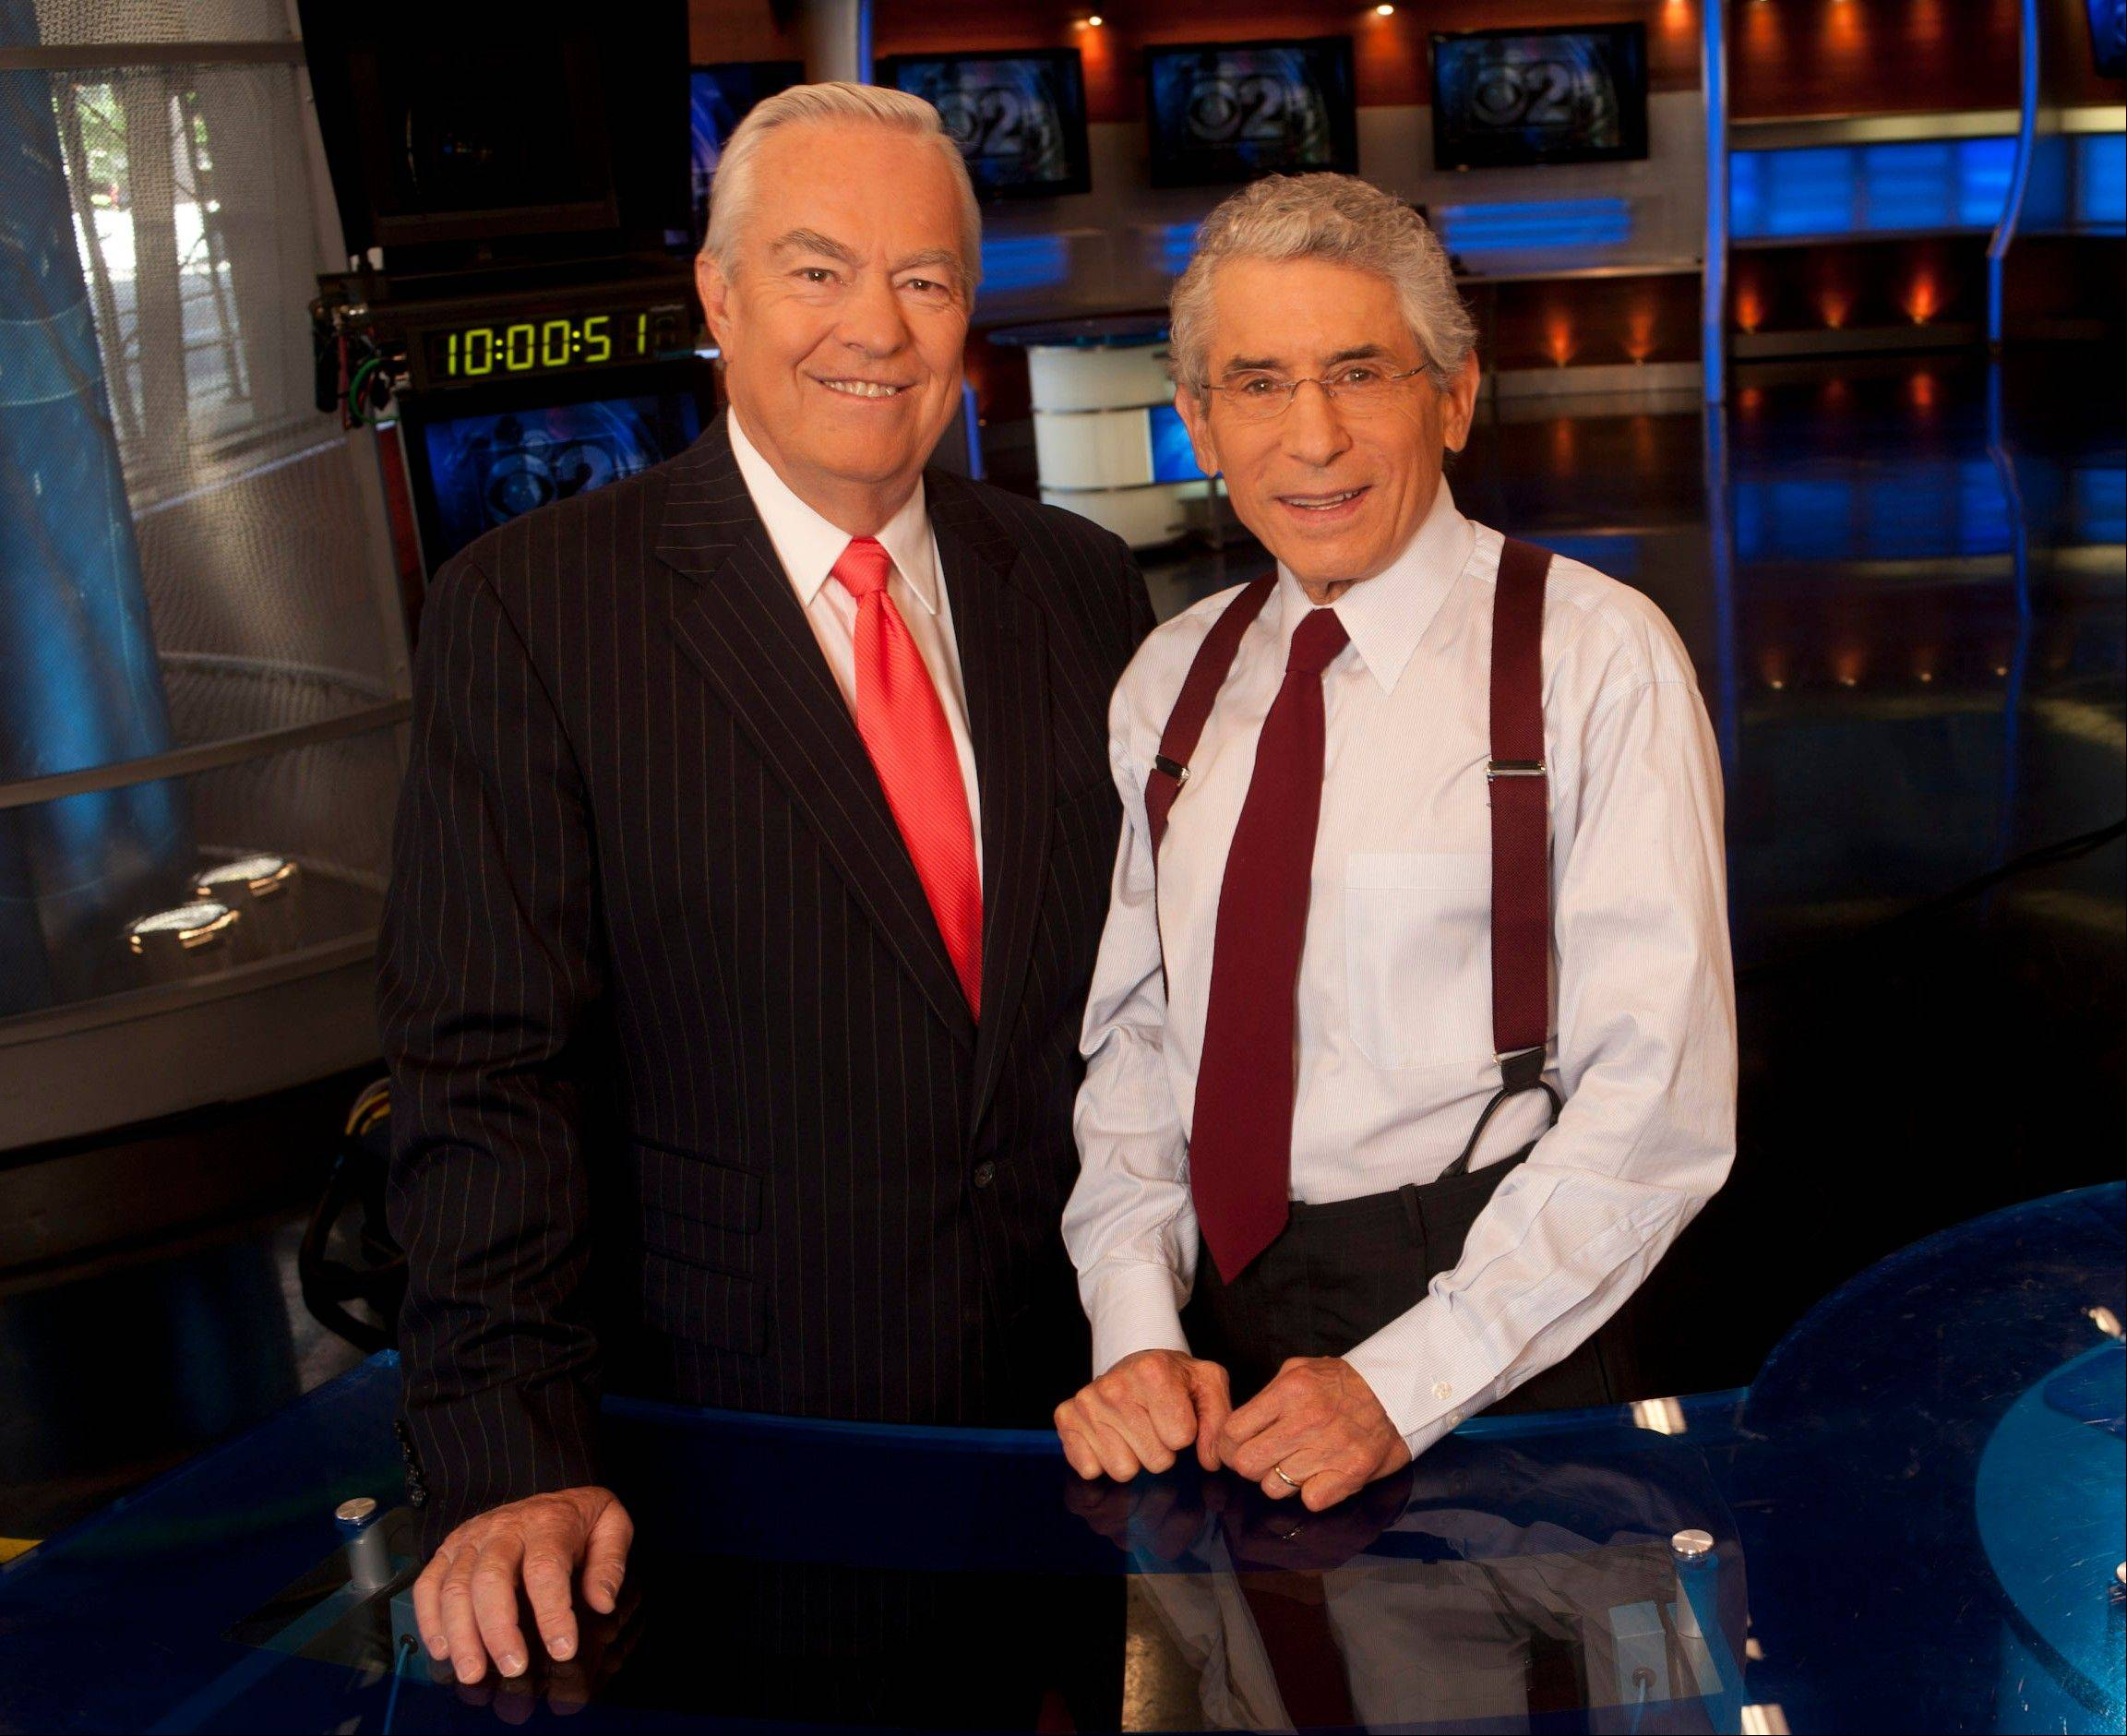 Bill Kurtis, left, and Walter Jacobson signed off as anchors after the 6 p.m. newscast Thursday at WBBM-TV Channel 2. The pair anchored the station's top-rated 10 p.m. newscast from 1973 to 1982, and returned to the 6 p.m. slot in August 2010.